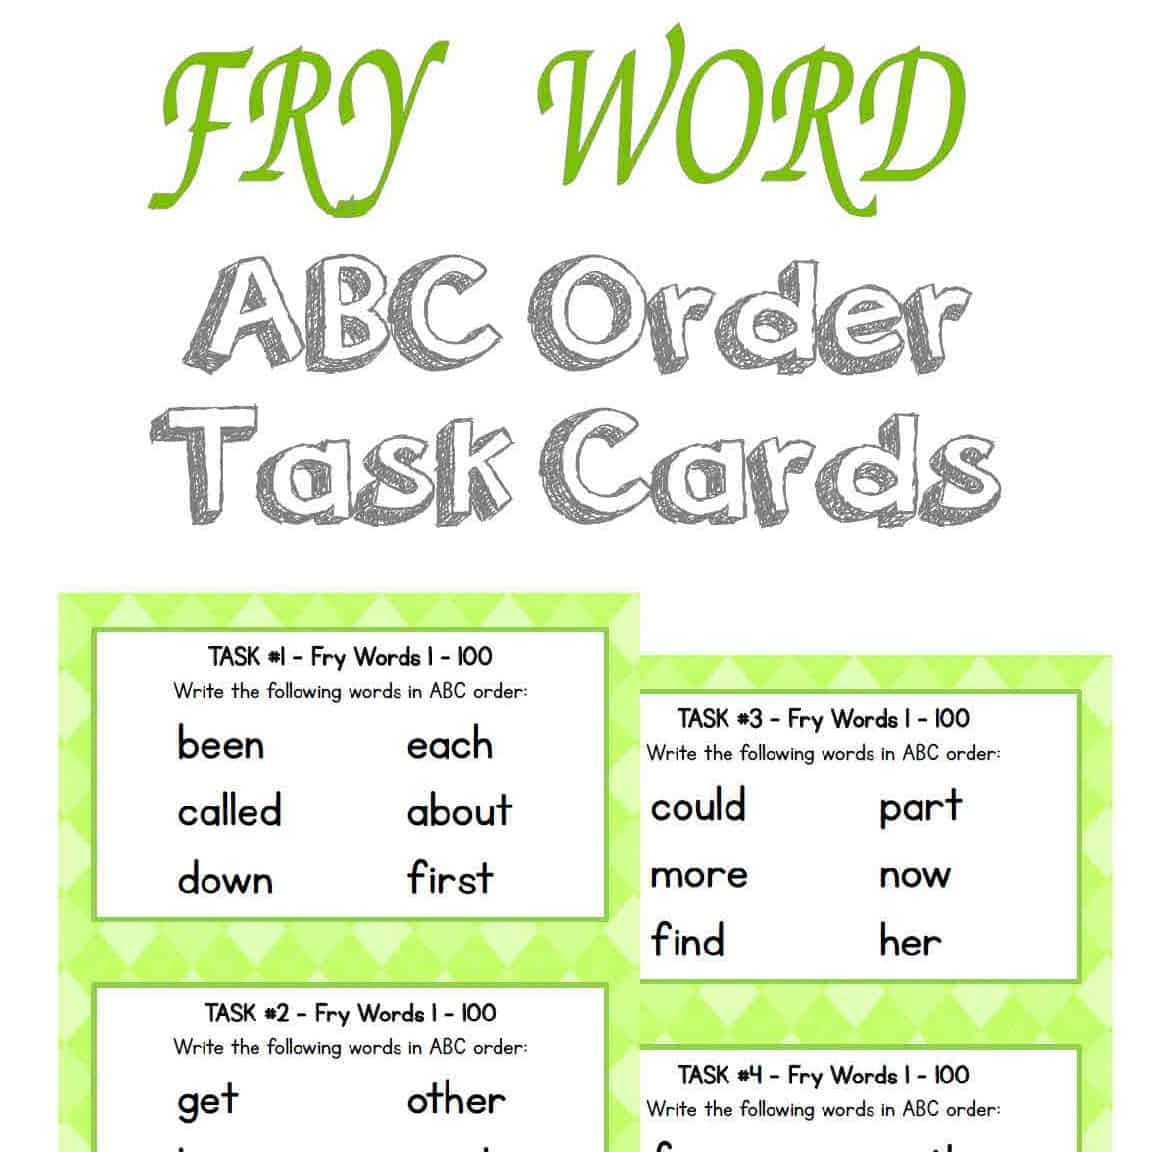 Worksheet Fry Word Cards fry word abc order task cards the curriculum corner 123